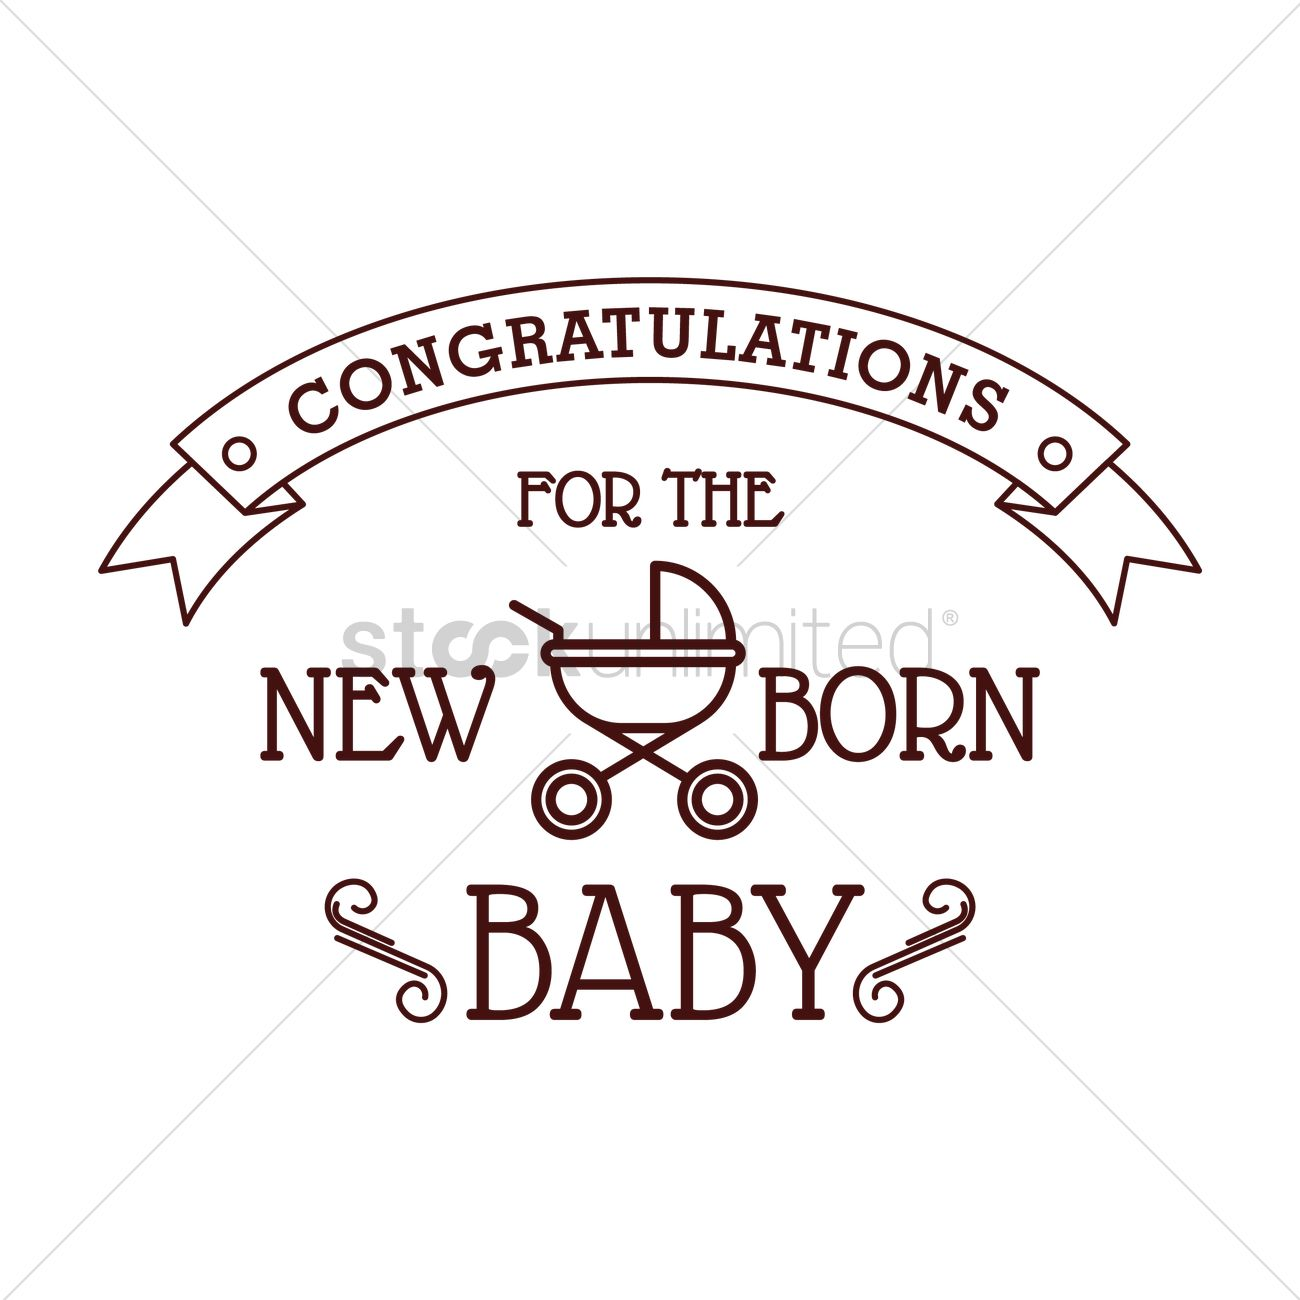 new born baby congrats